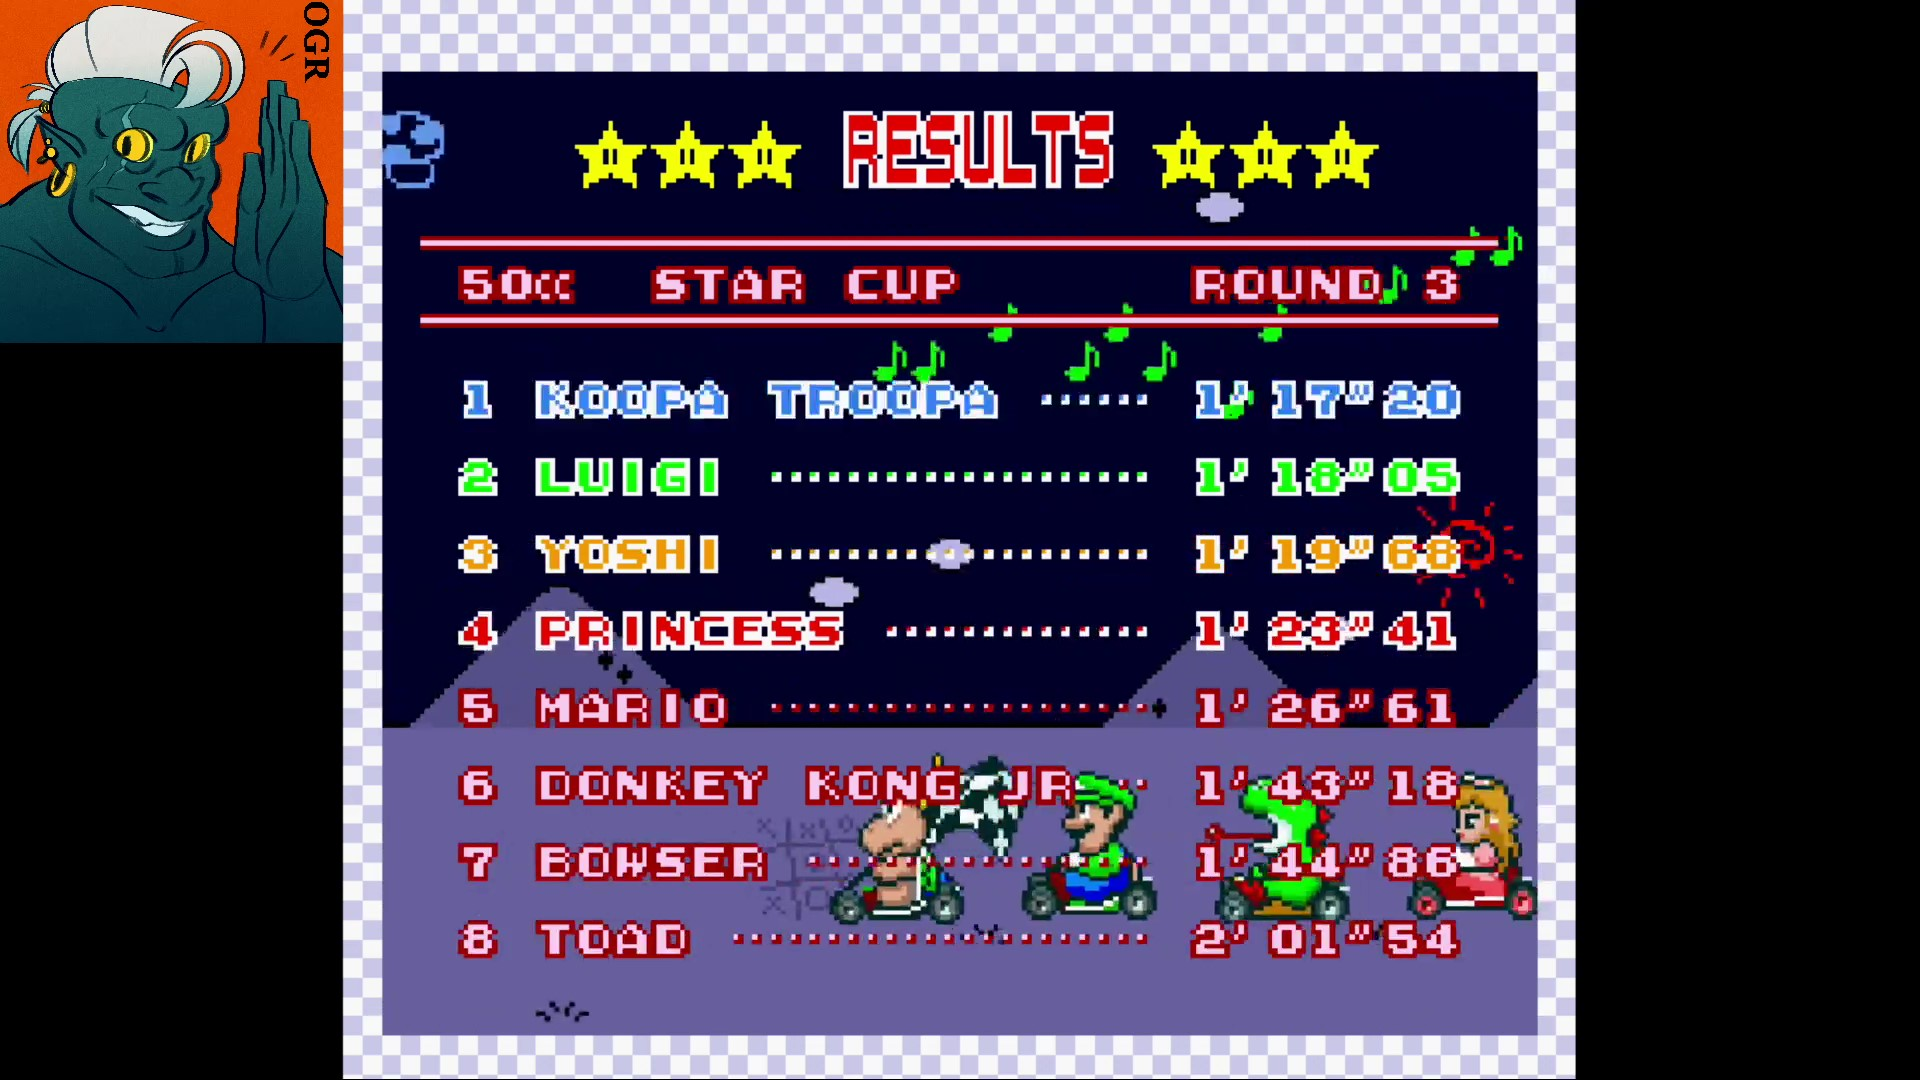 AwesomeOgre: Super Mario Kart [Star Cup: Vanilla Lake 1: 50CC] (SNES/Super Famicom Emulated) 0:01:17.2 points on 2020-02-12 23:54:18